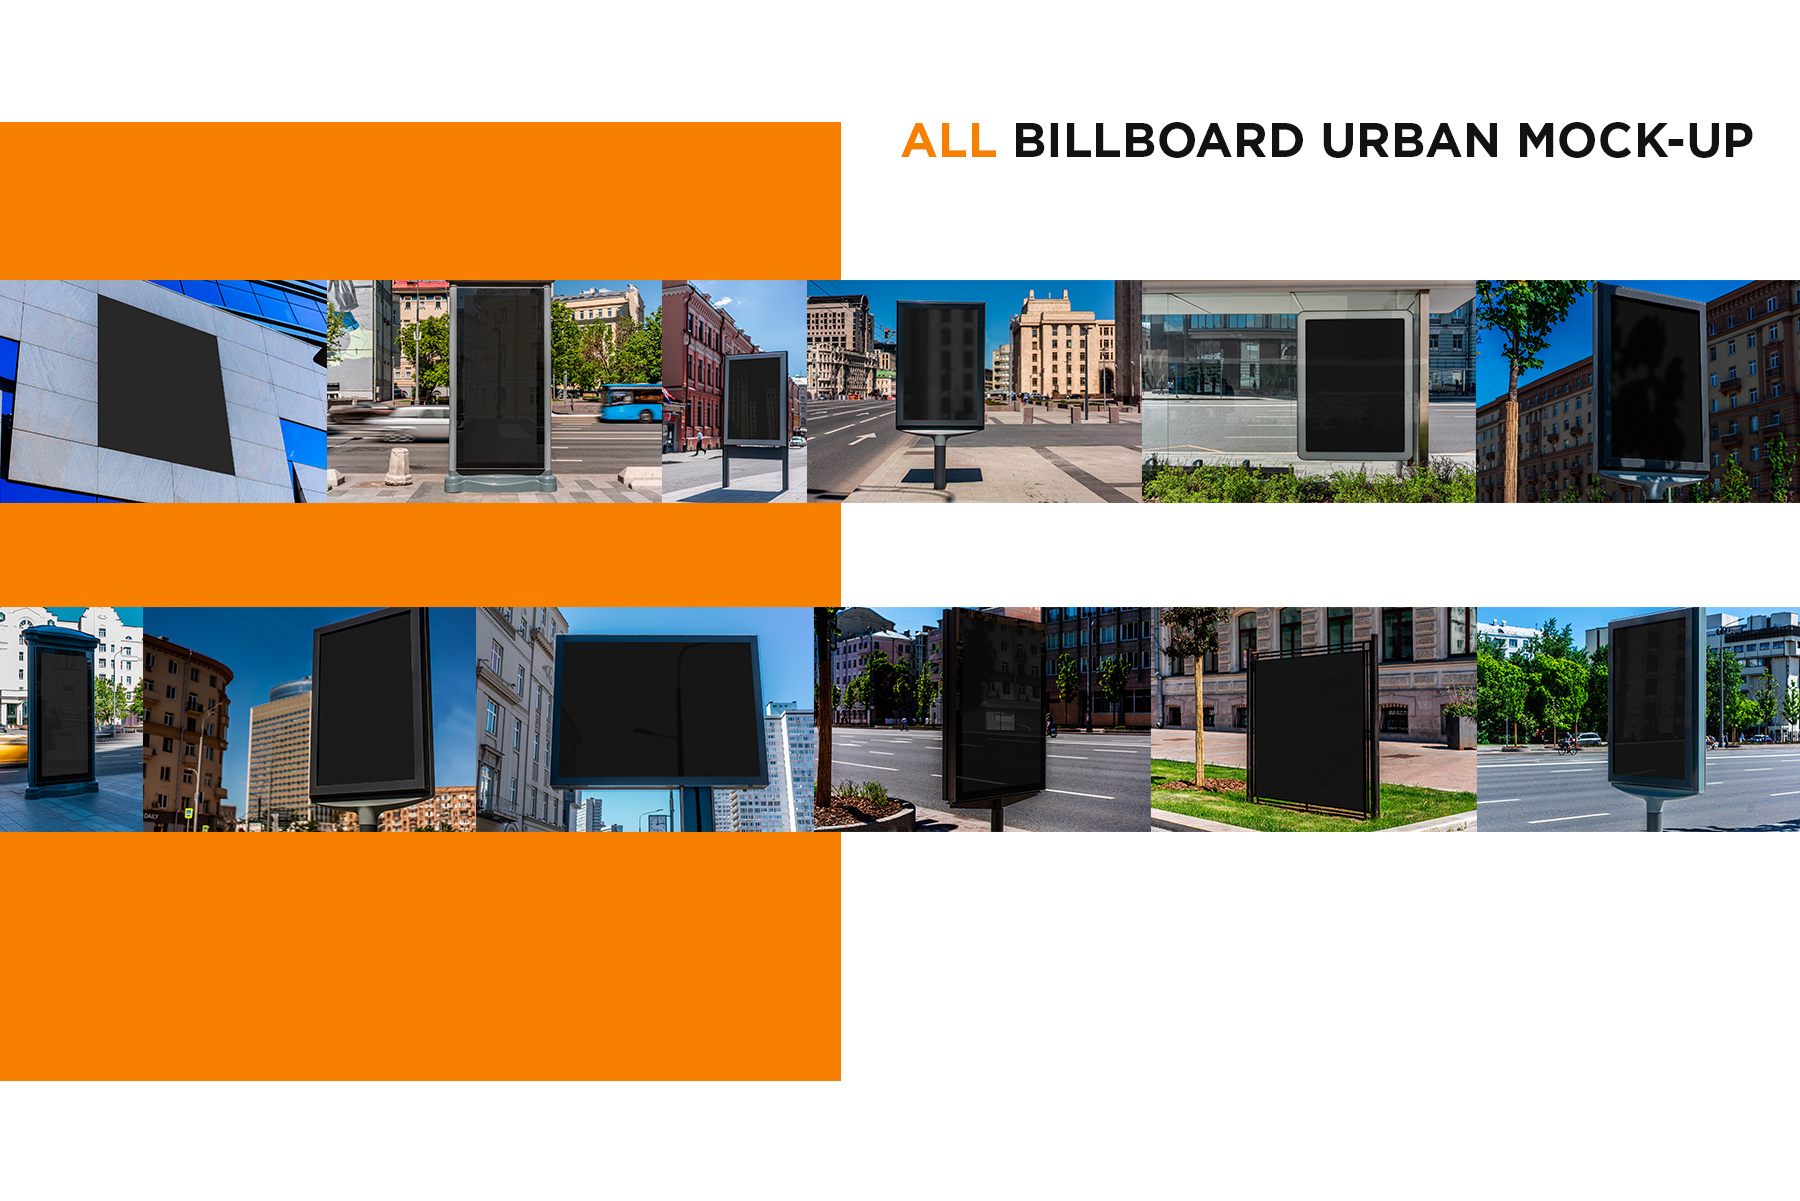 Billboards Urban Mock-Up